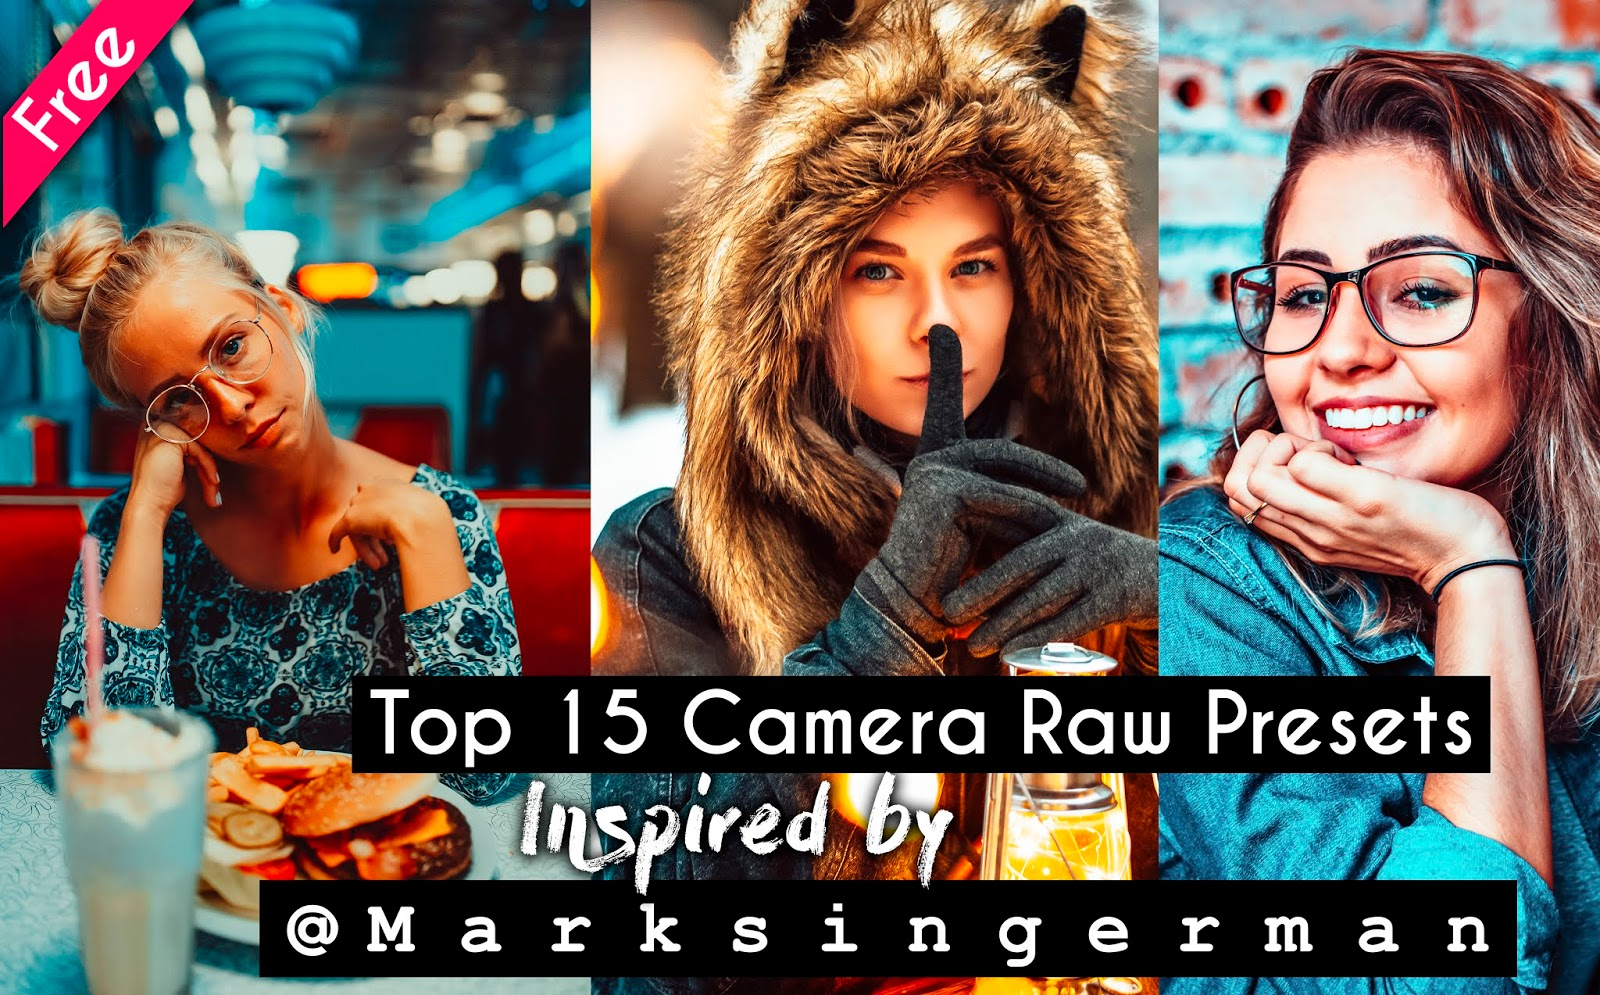 Download Top 15+ @Mark Singerman Inspired Presets for Free How to Edit Like Mark Singerman in Photoshop